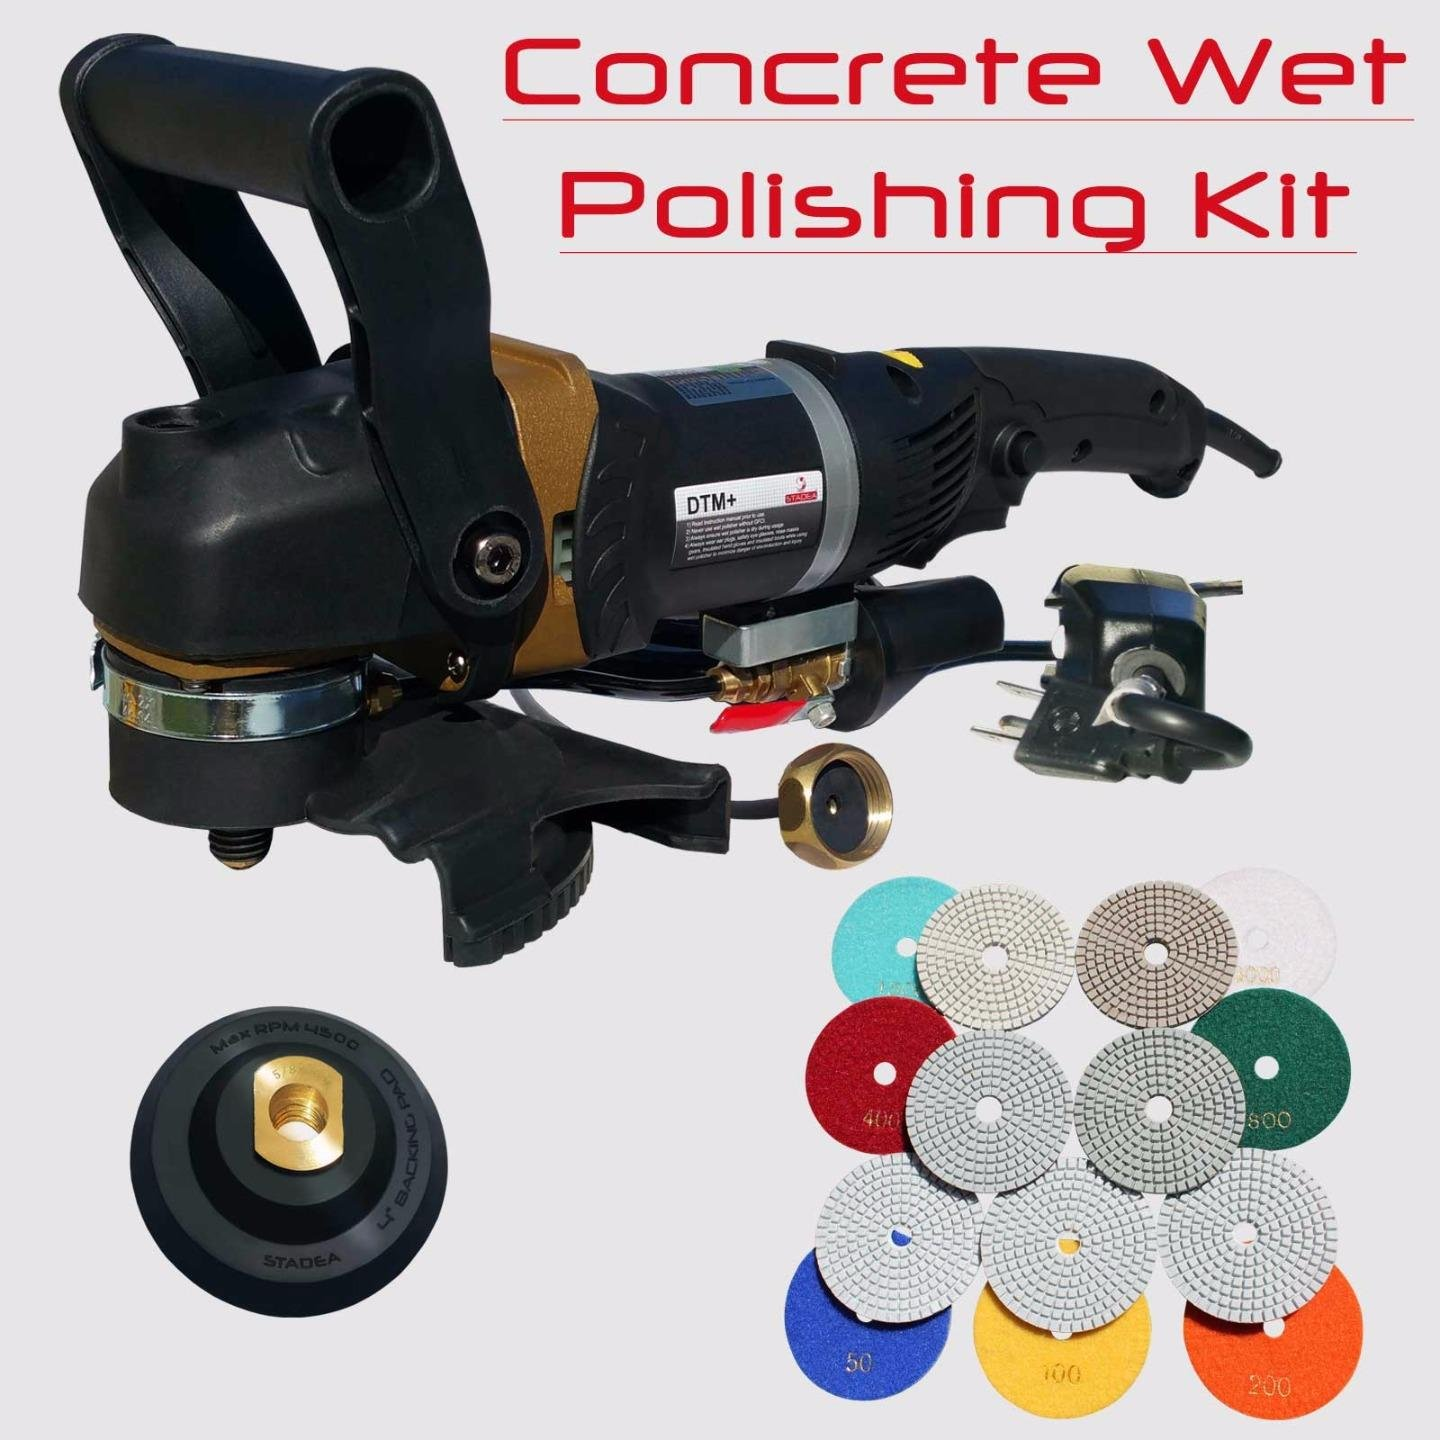 Stadea Wet Concrete Polisher Grinder Kit with Concrete Diamond Polishing Pads - Wet Polisher Variable Speed for Wet Dry Polishing